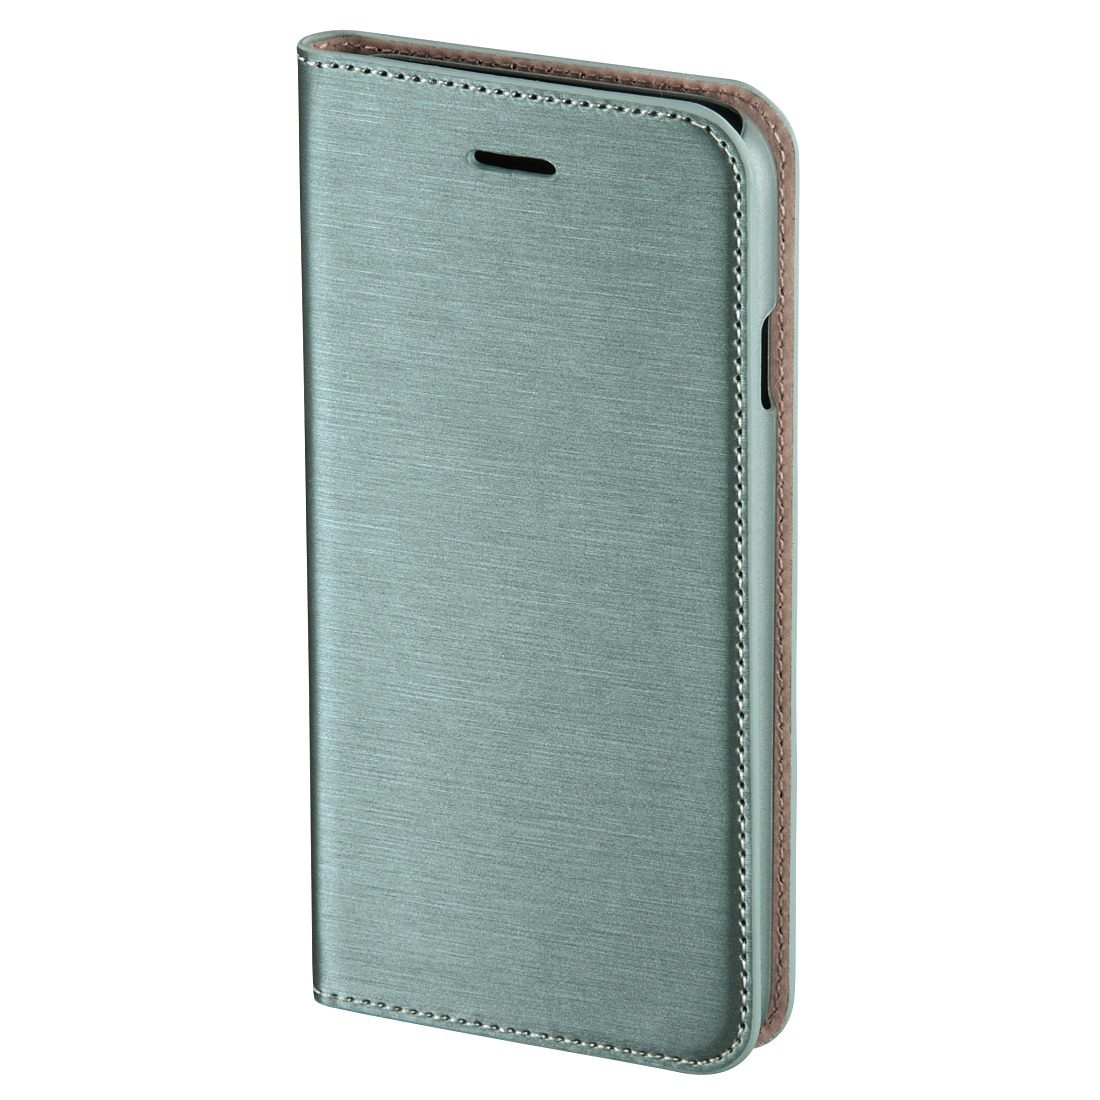 Hama Booklet Slim für Apple iPhone 6, Khaki